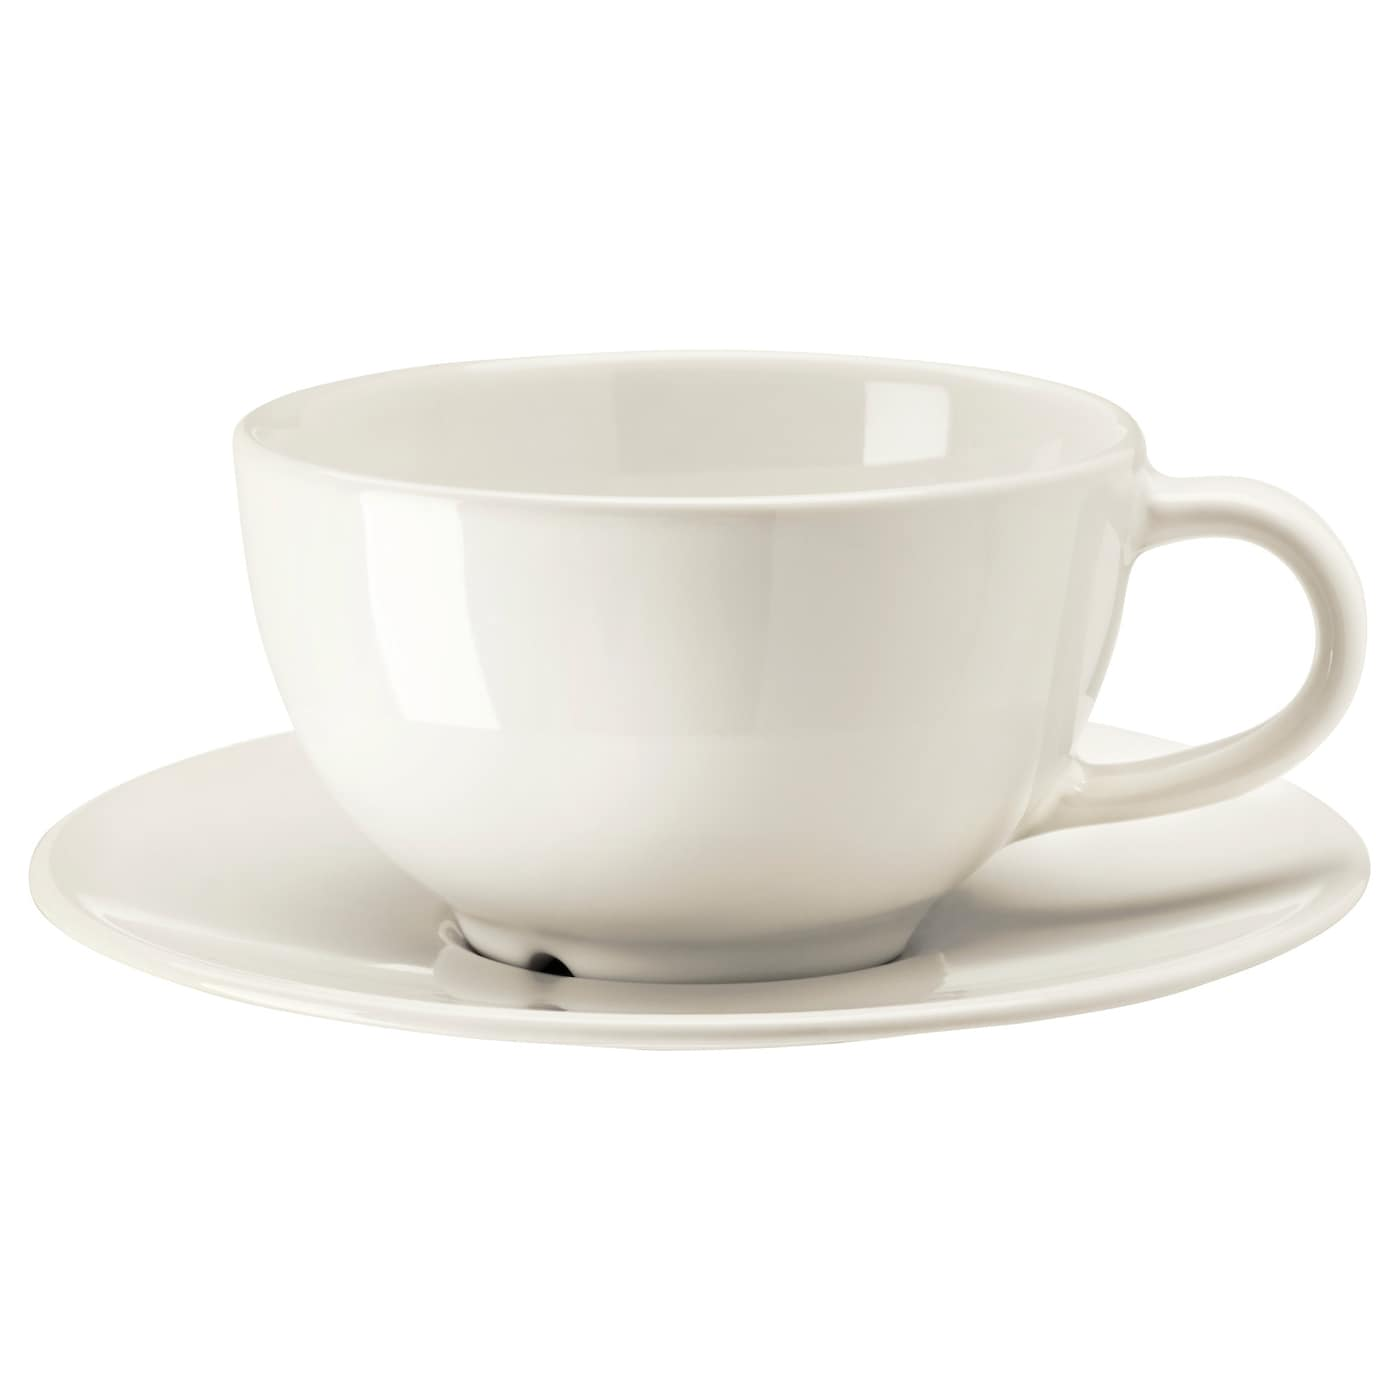 IKEA VARDAGEN teacup with saucer